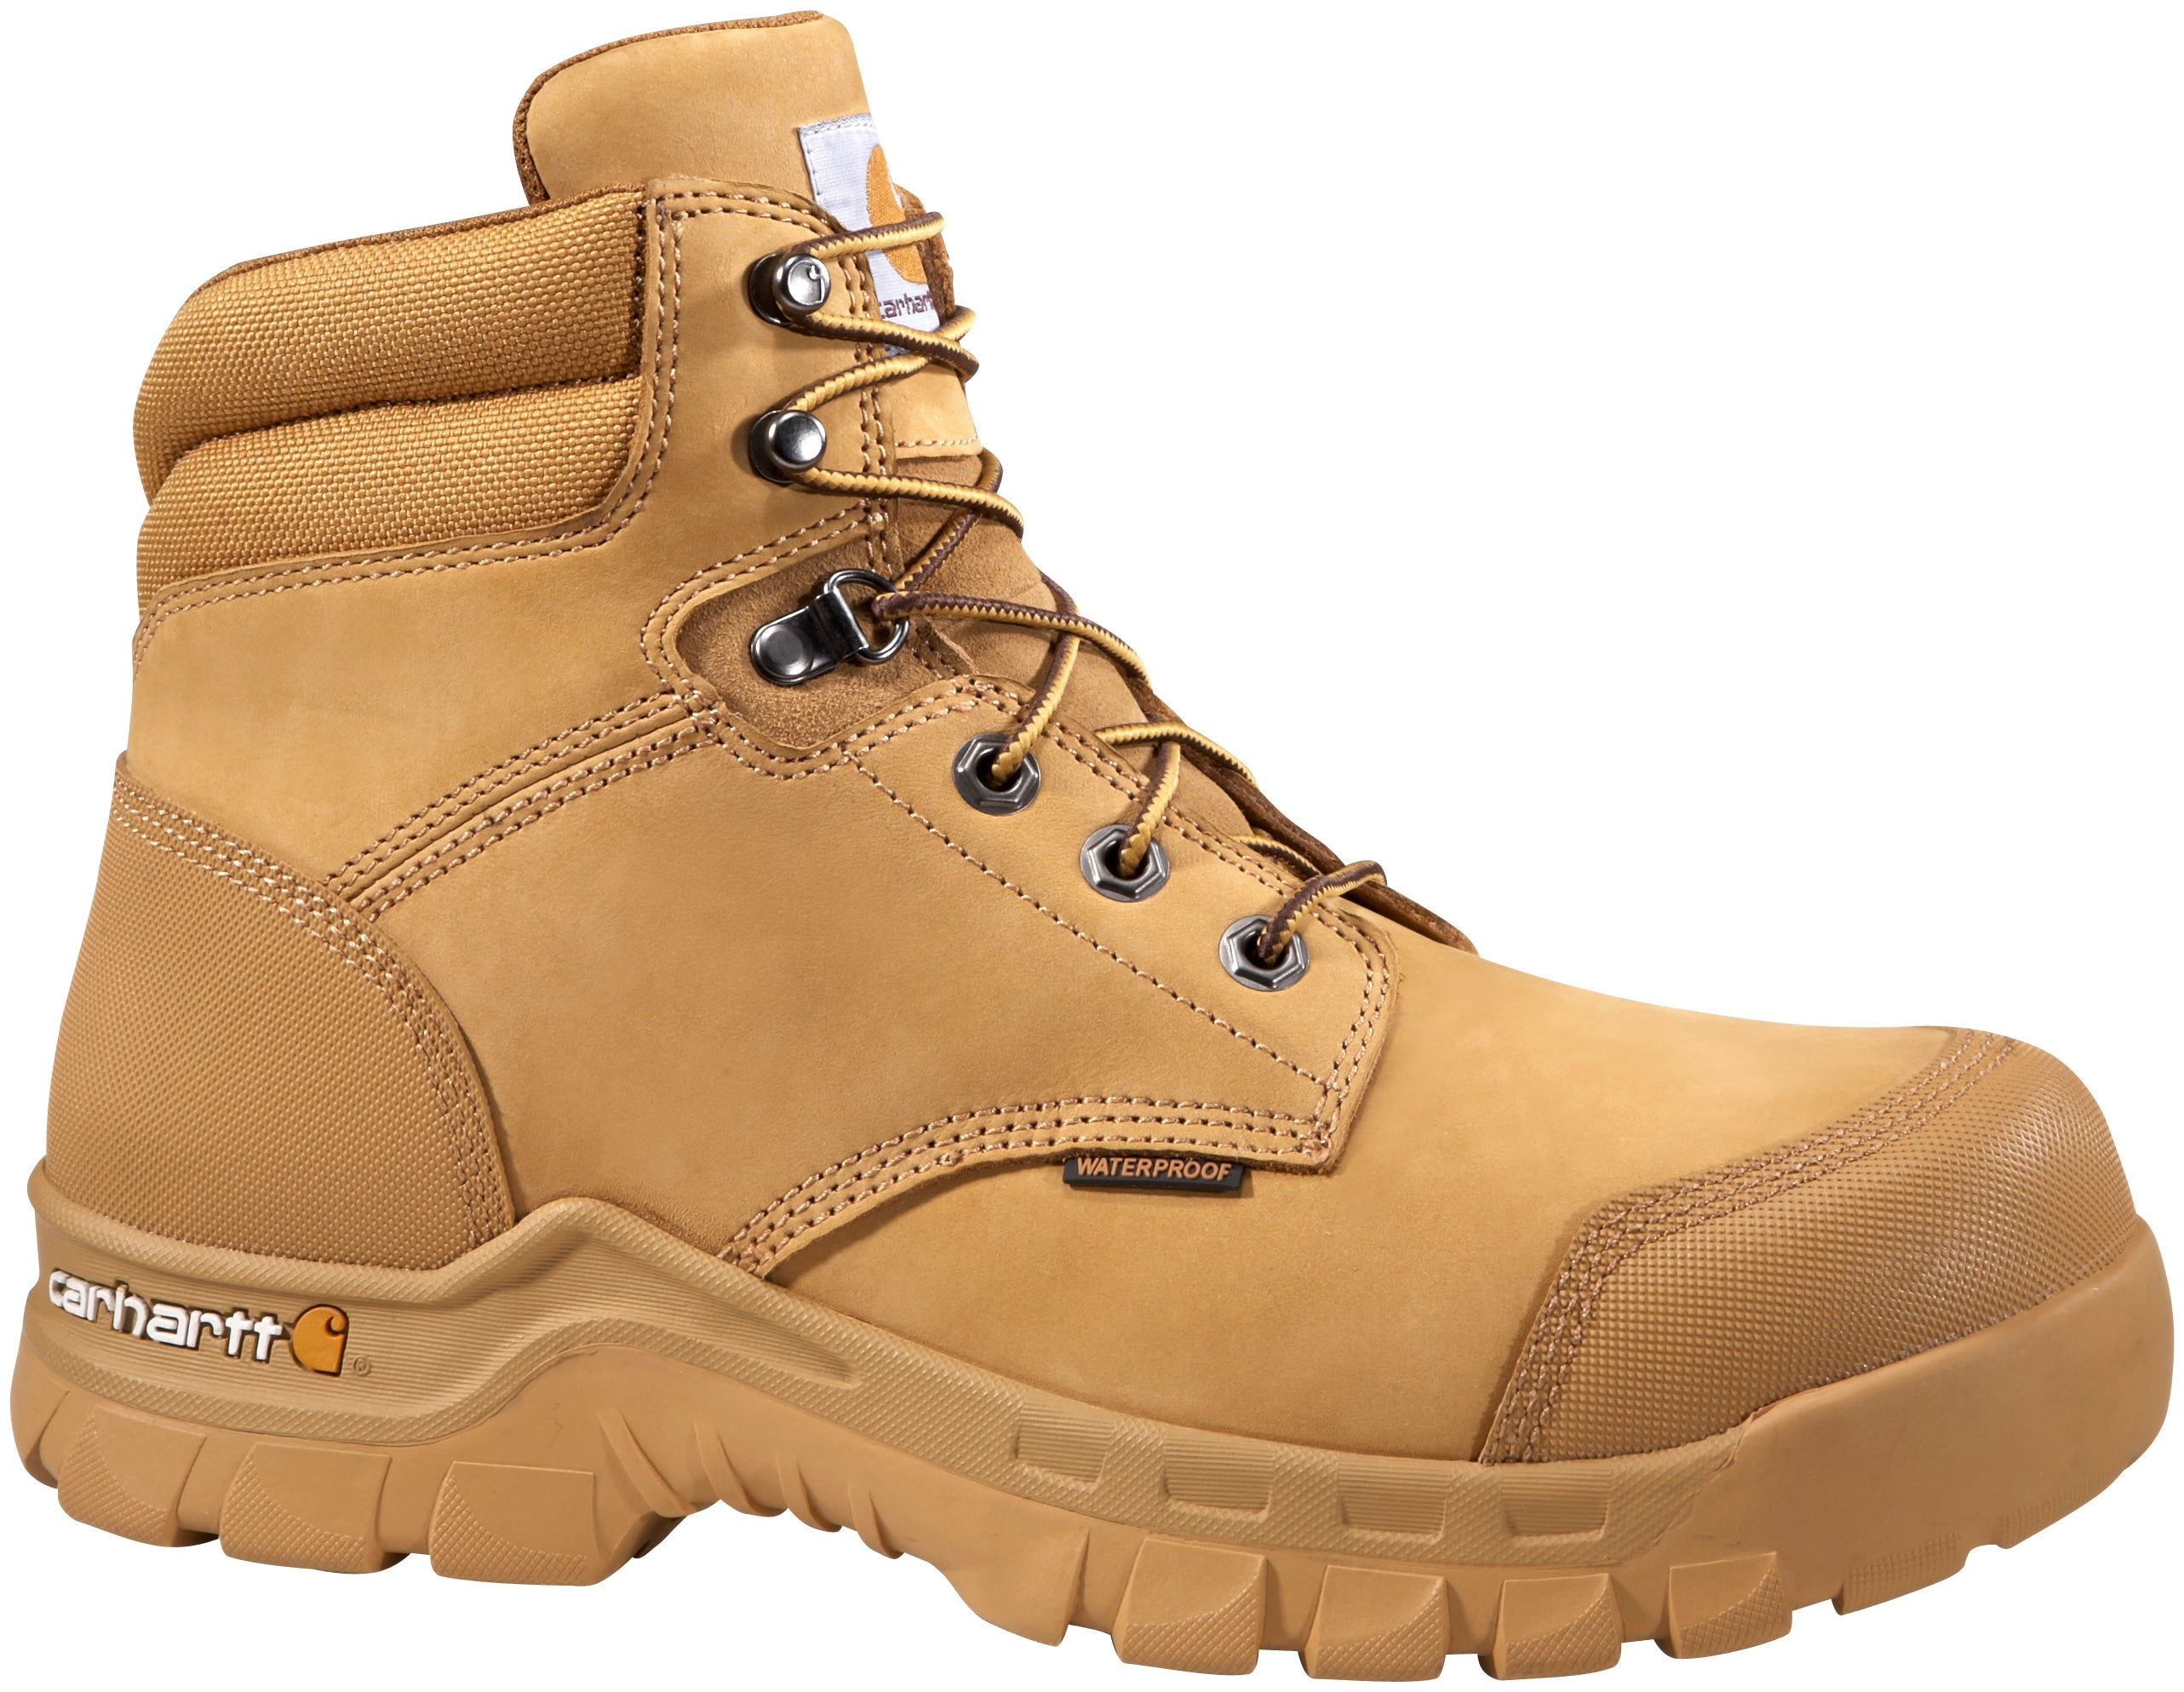 Carhartt 6 In Rugged Flex Waterproof Insulated